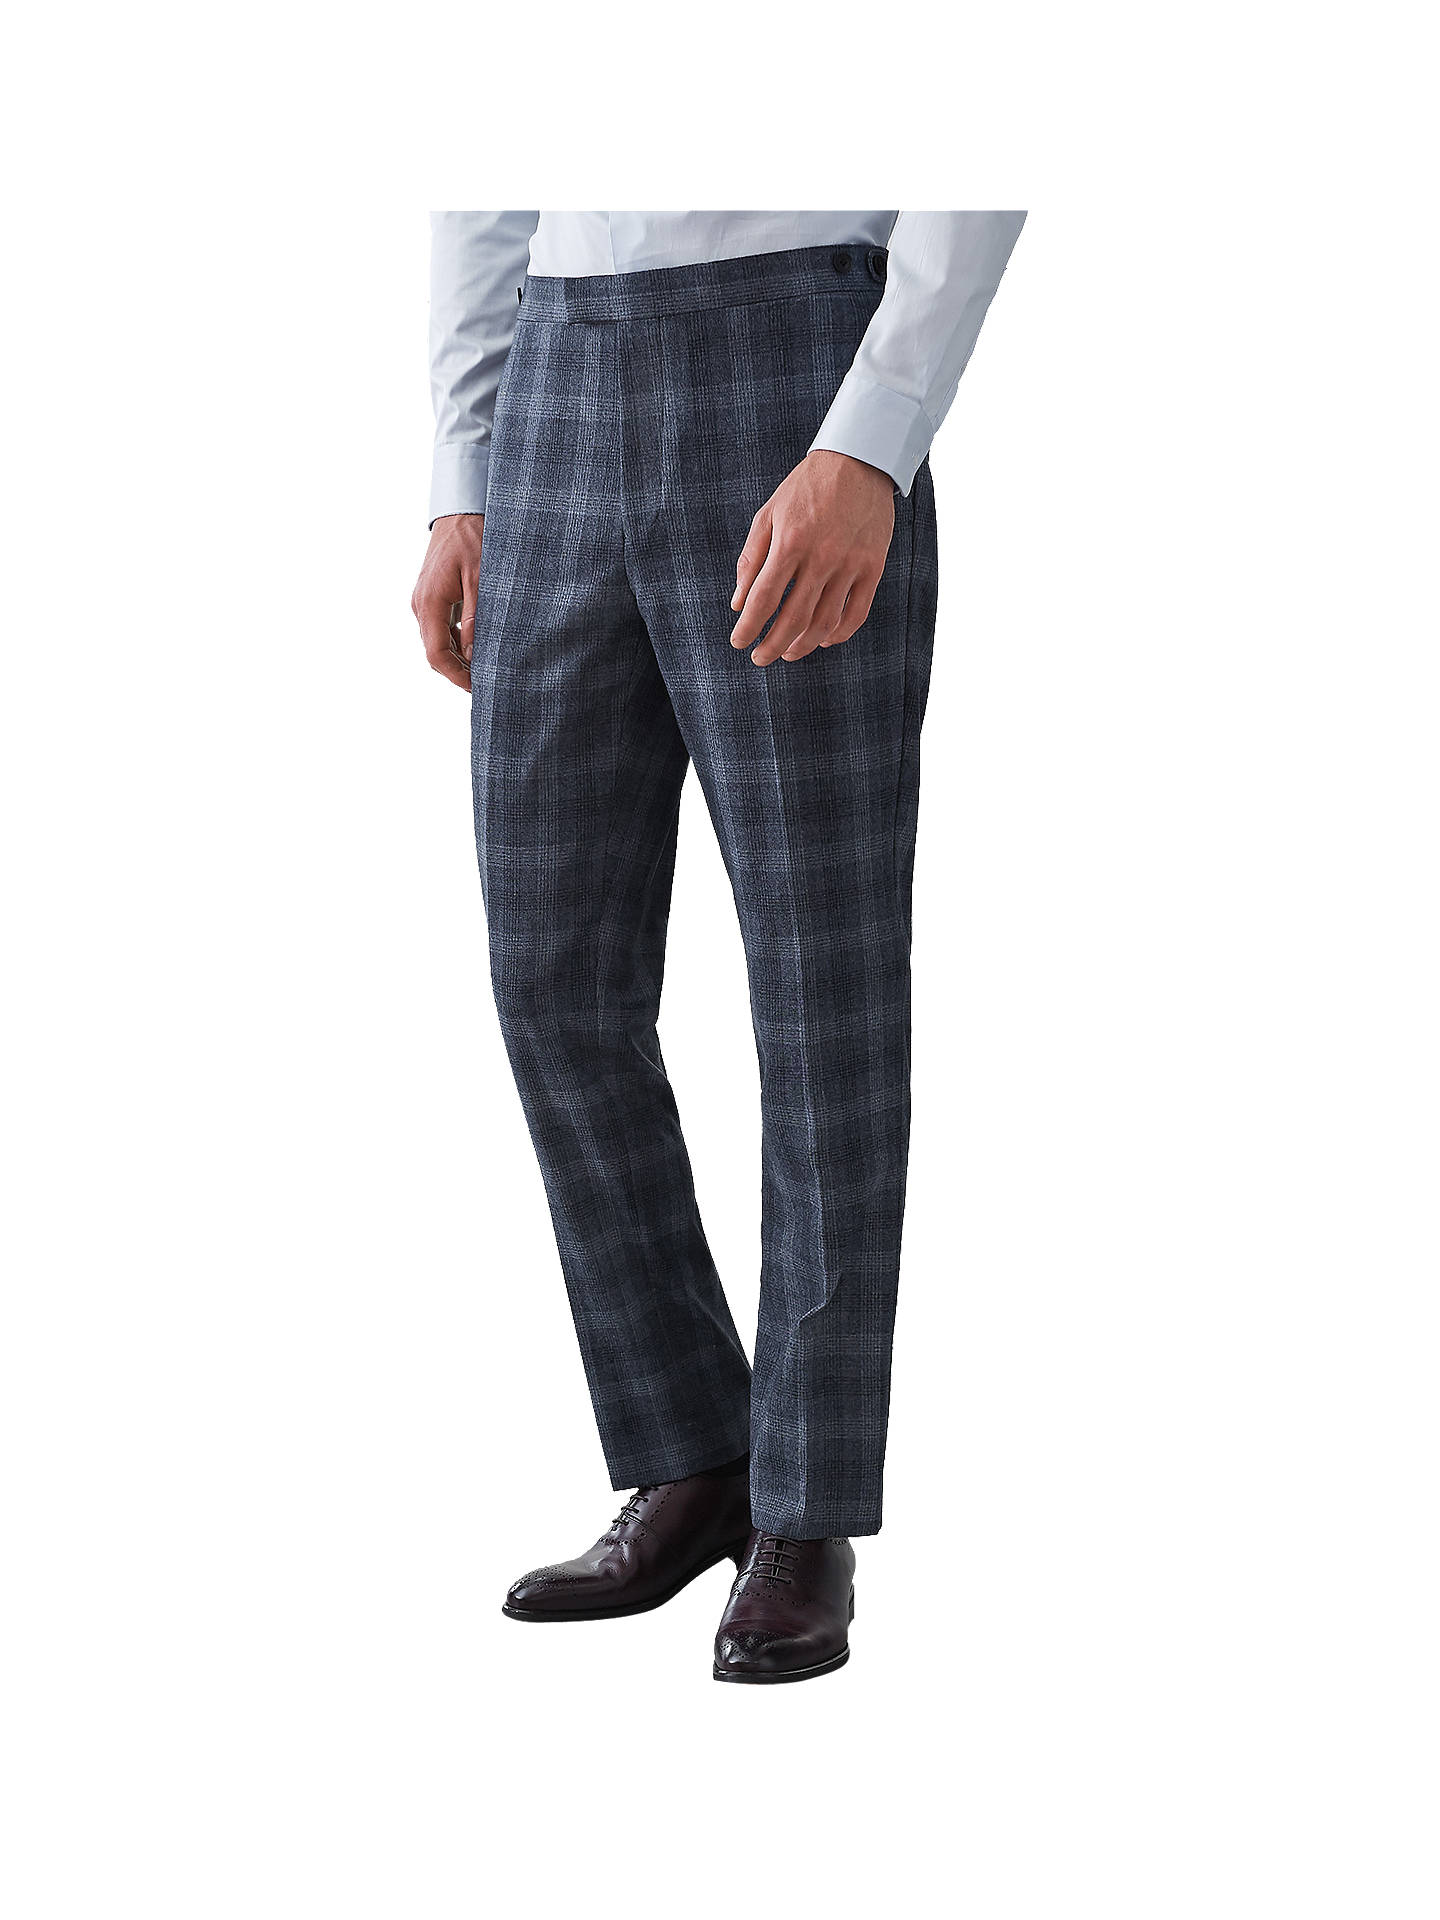 Buy Reiss Bondi Wool Check Slim Fit Suit Trousers, Airforce Blue, 30R Online at johnlewis.com